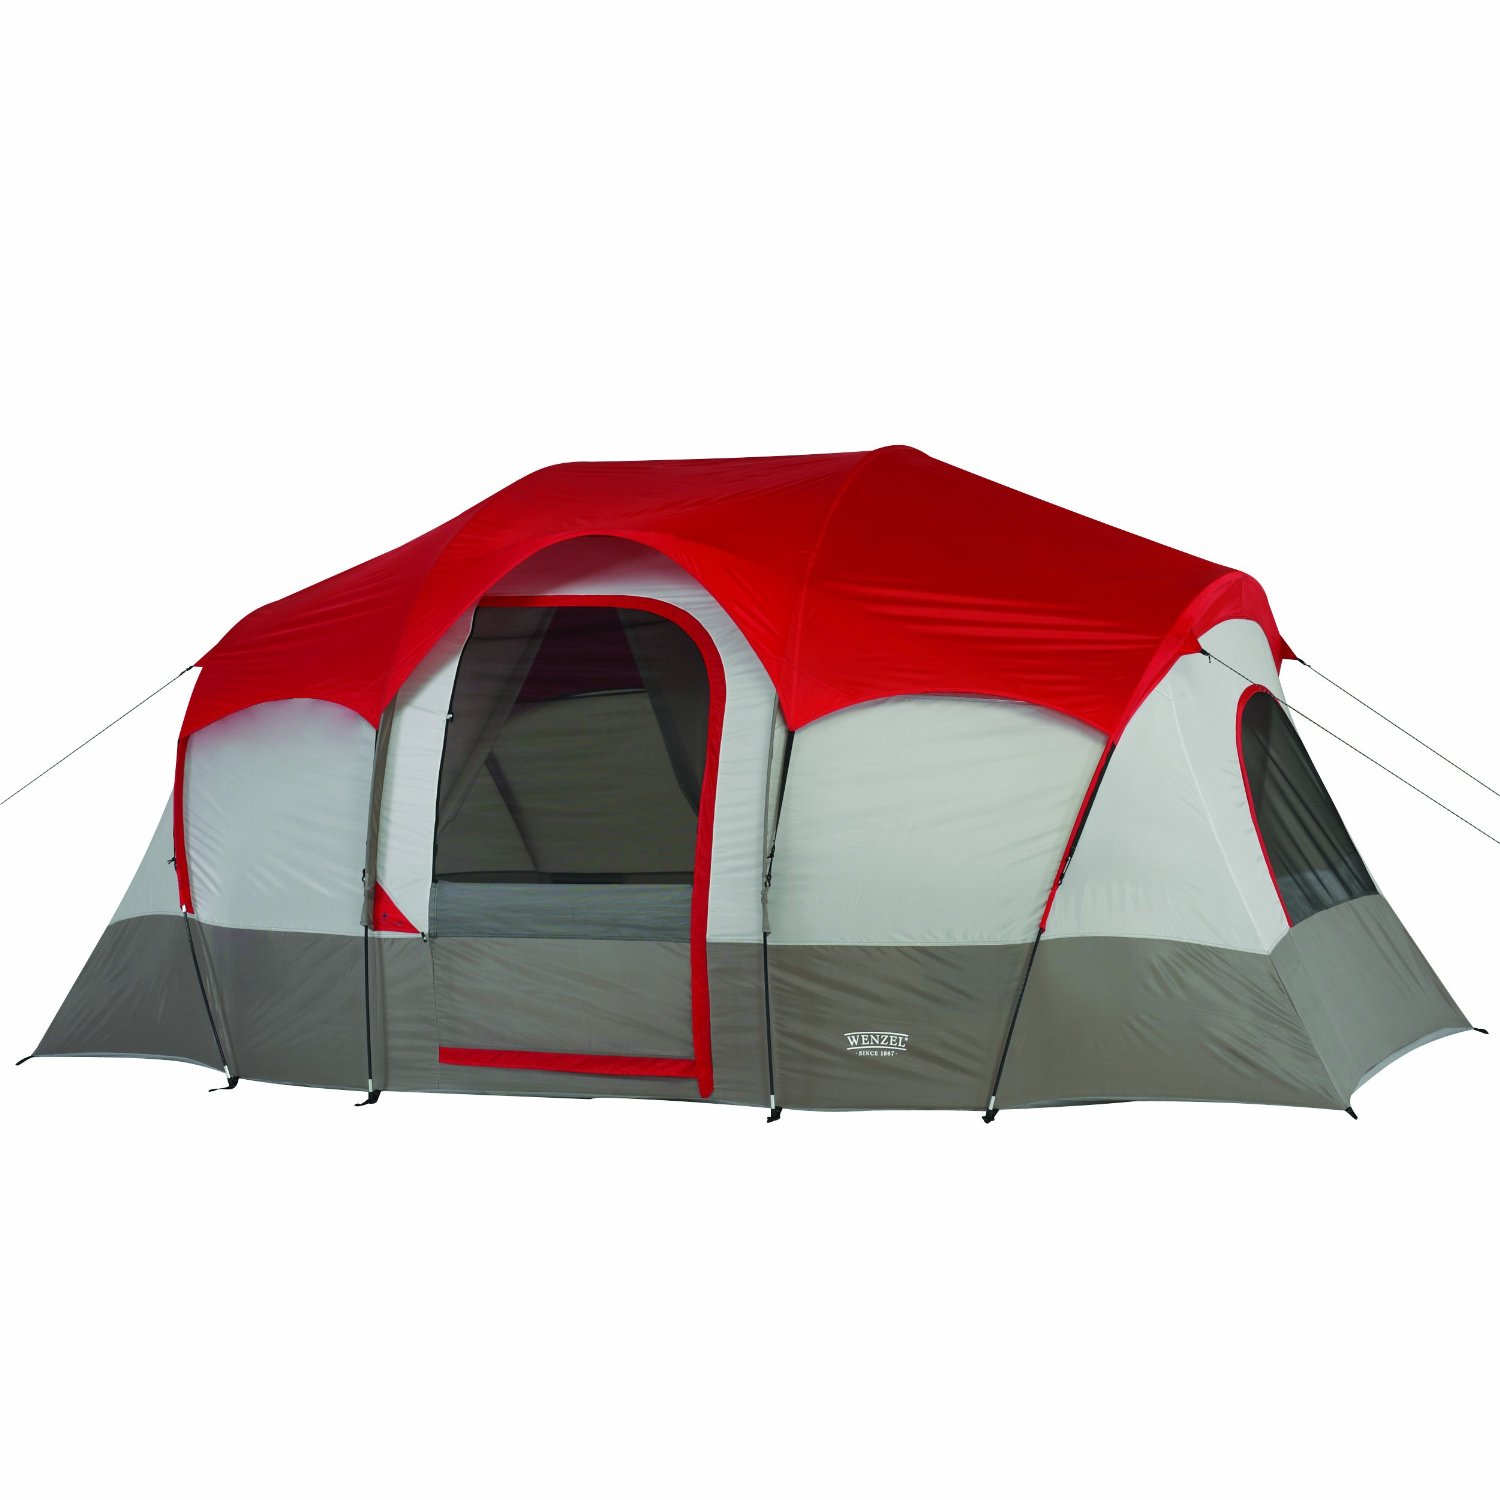 Wenzel Tents  sc 1 st  Wellbeing Enhanced & Wellbeing Enhanced: Best Camping Tents 2018